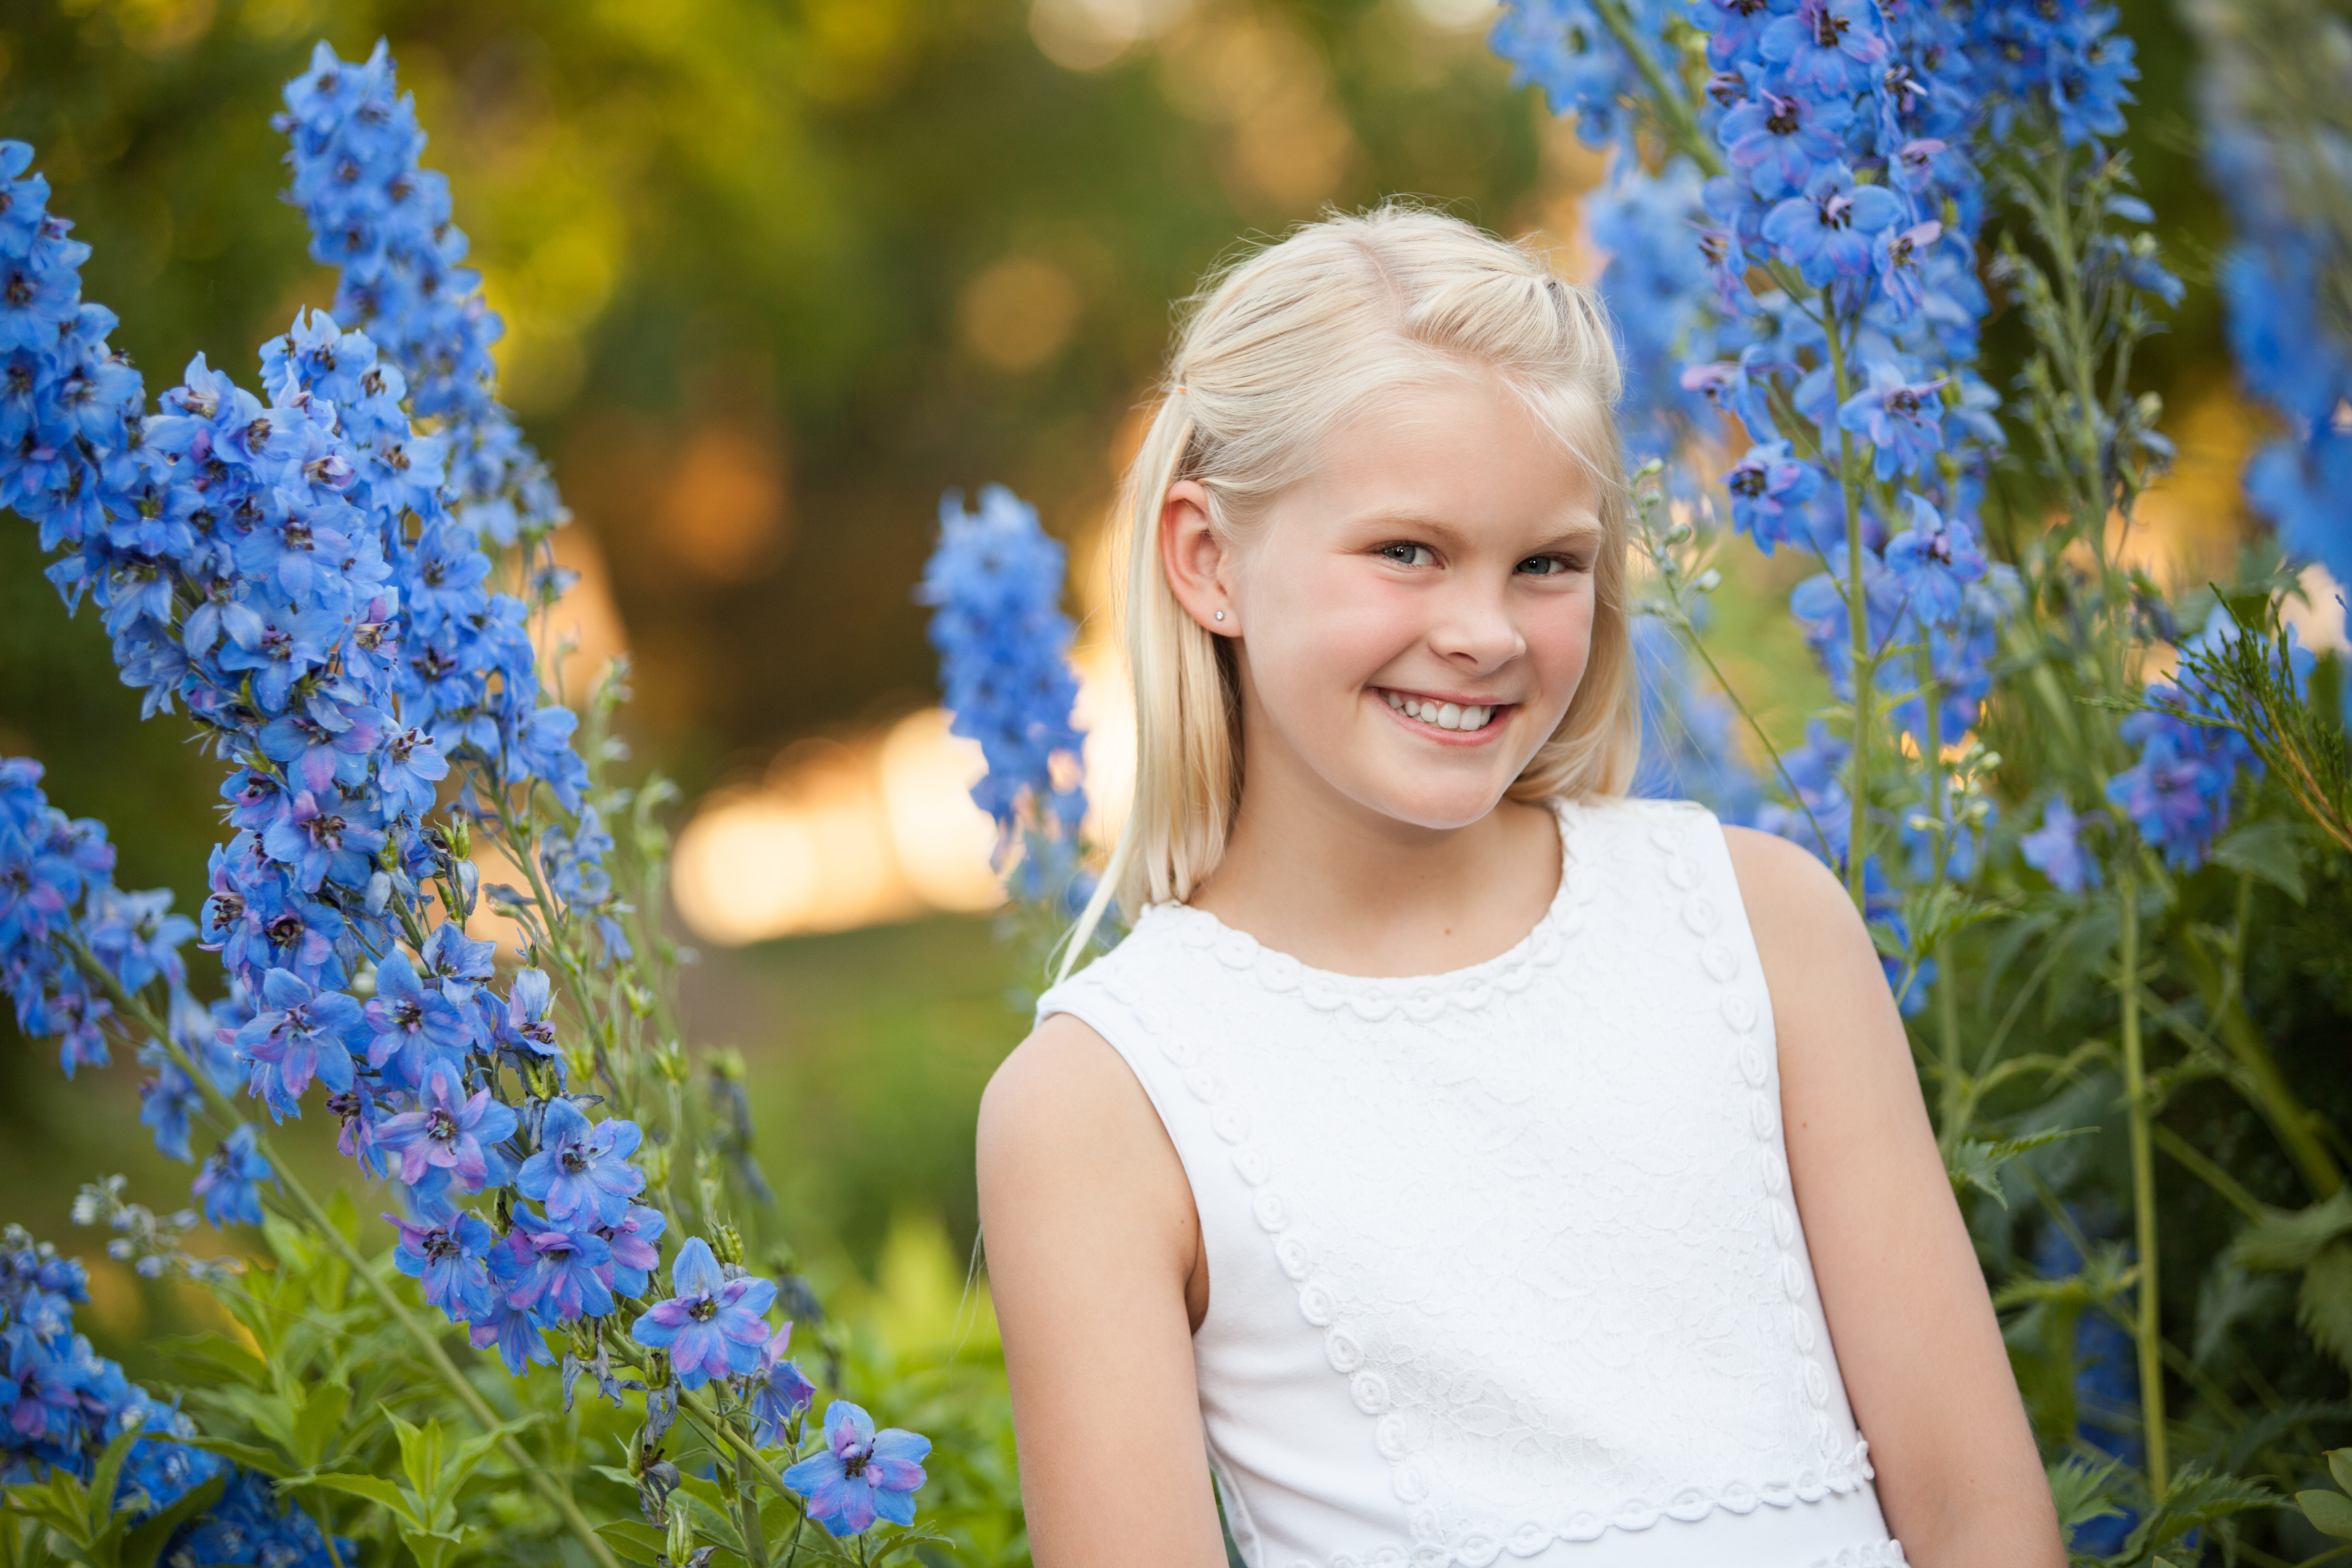 Tween girl by blue flowers